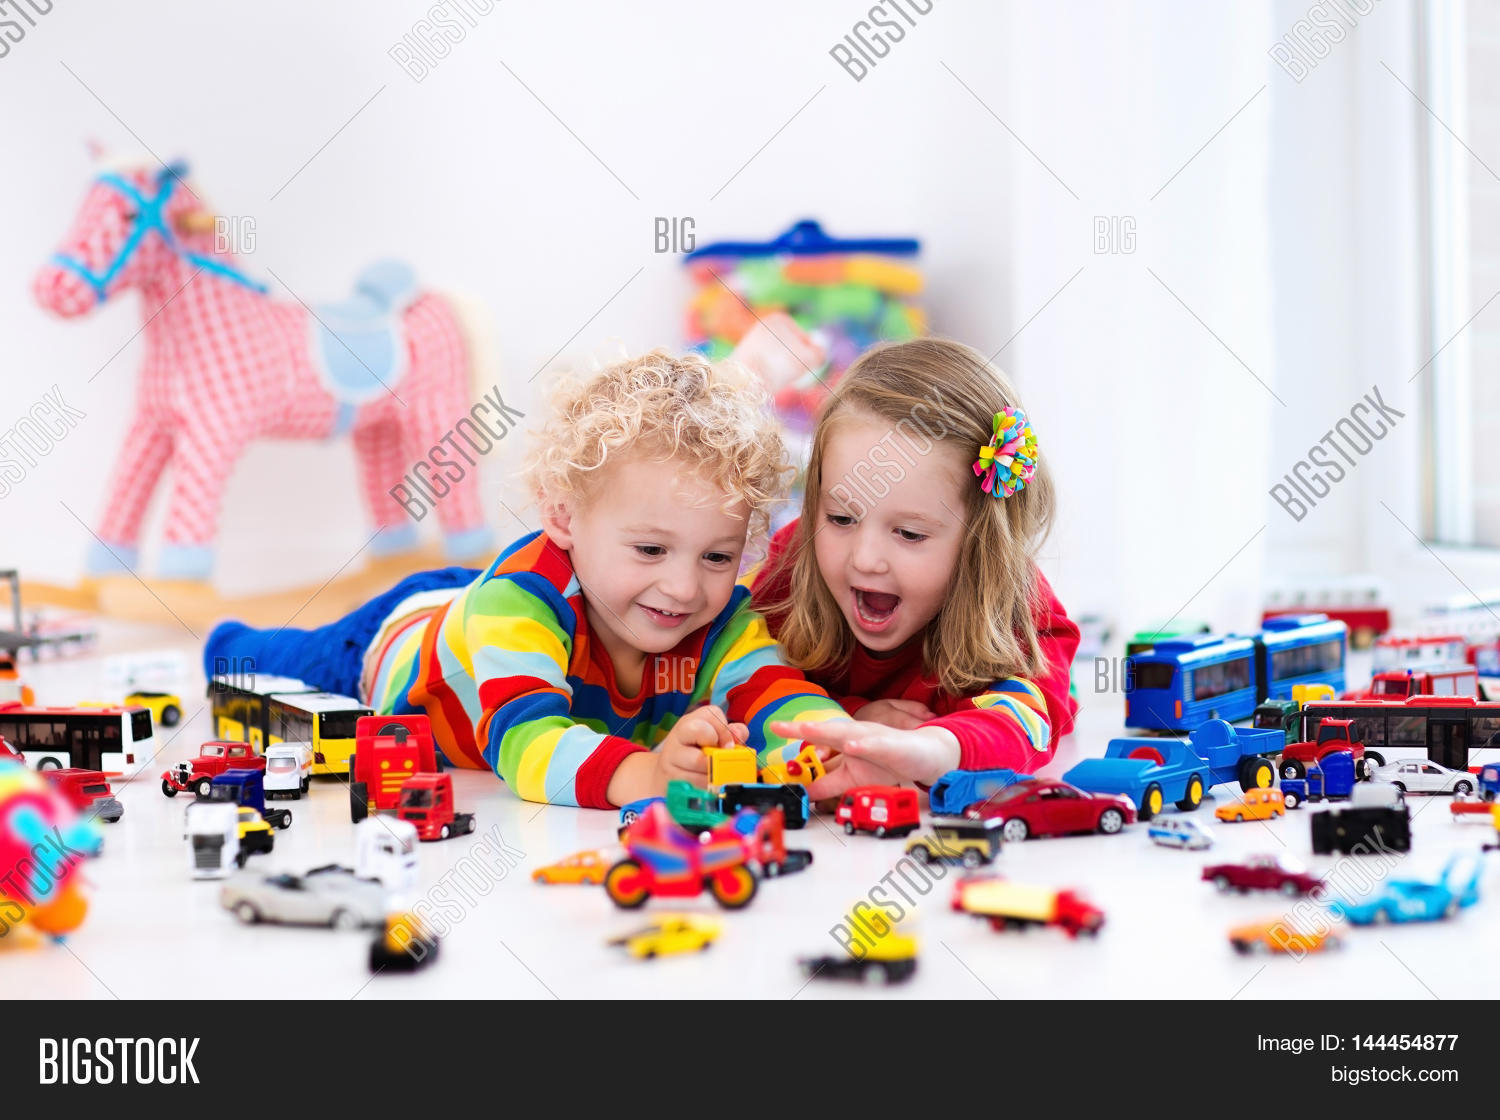 Big Boy Toys Games : Little toddler boy girl playing image photo bigstock